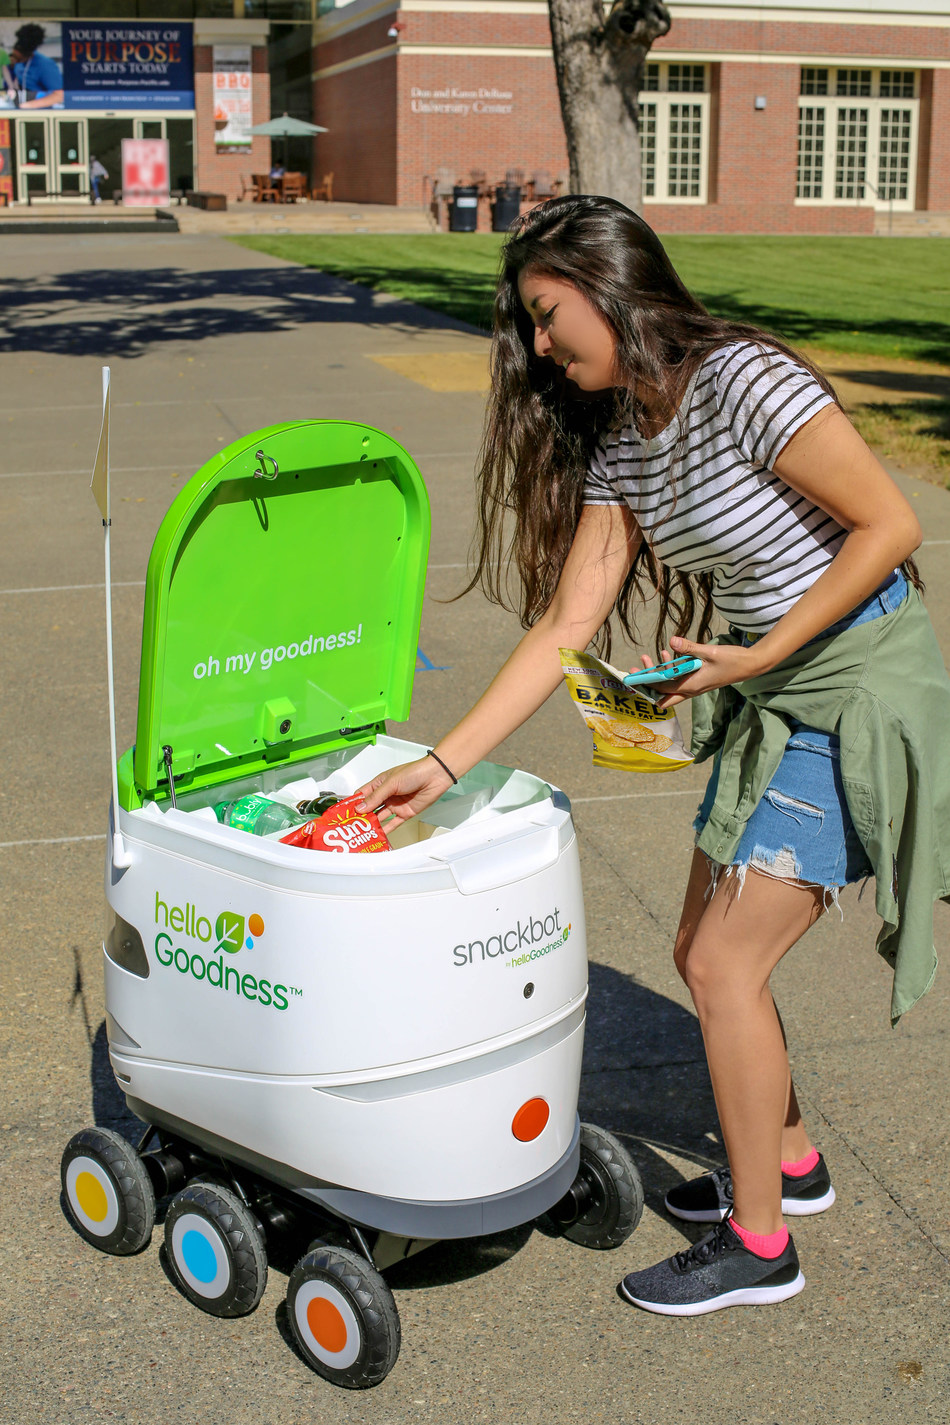 PepsiCo's Hello Goodness snackbot launches today at University of the Pacific